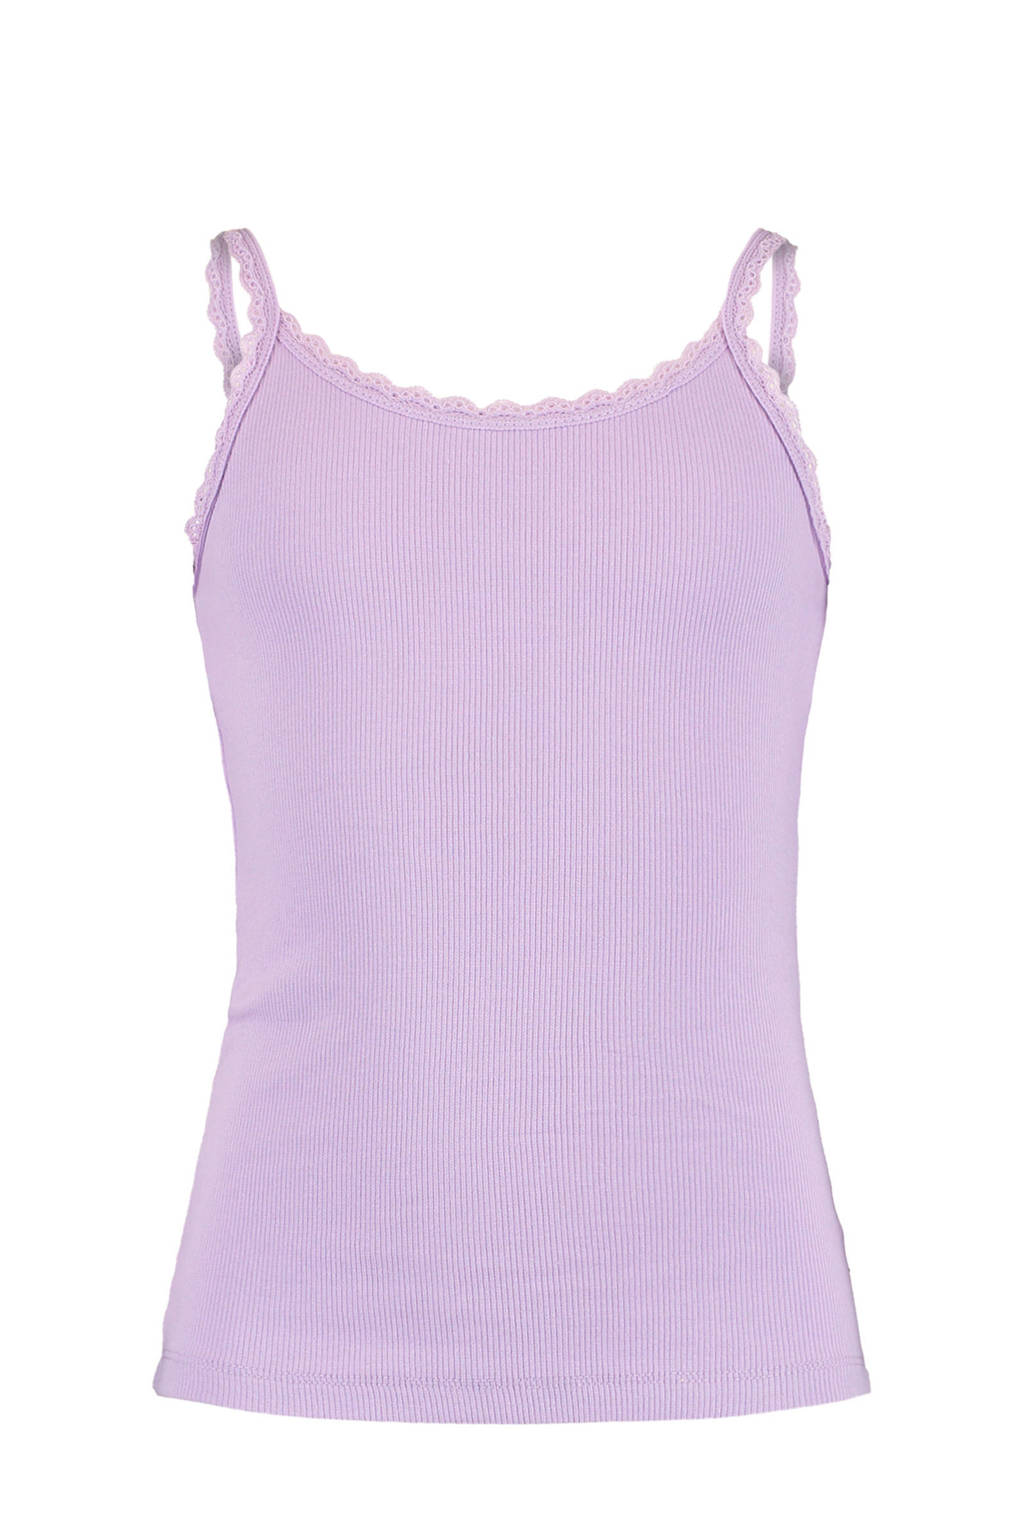 America Today Junior singlet Bella lila, Lila